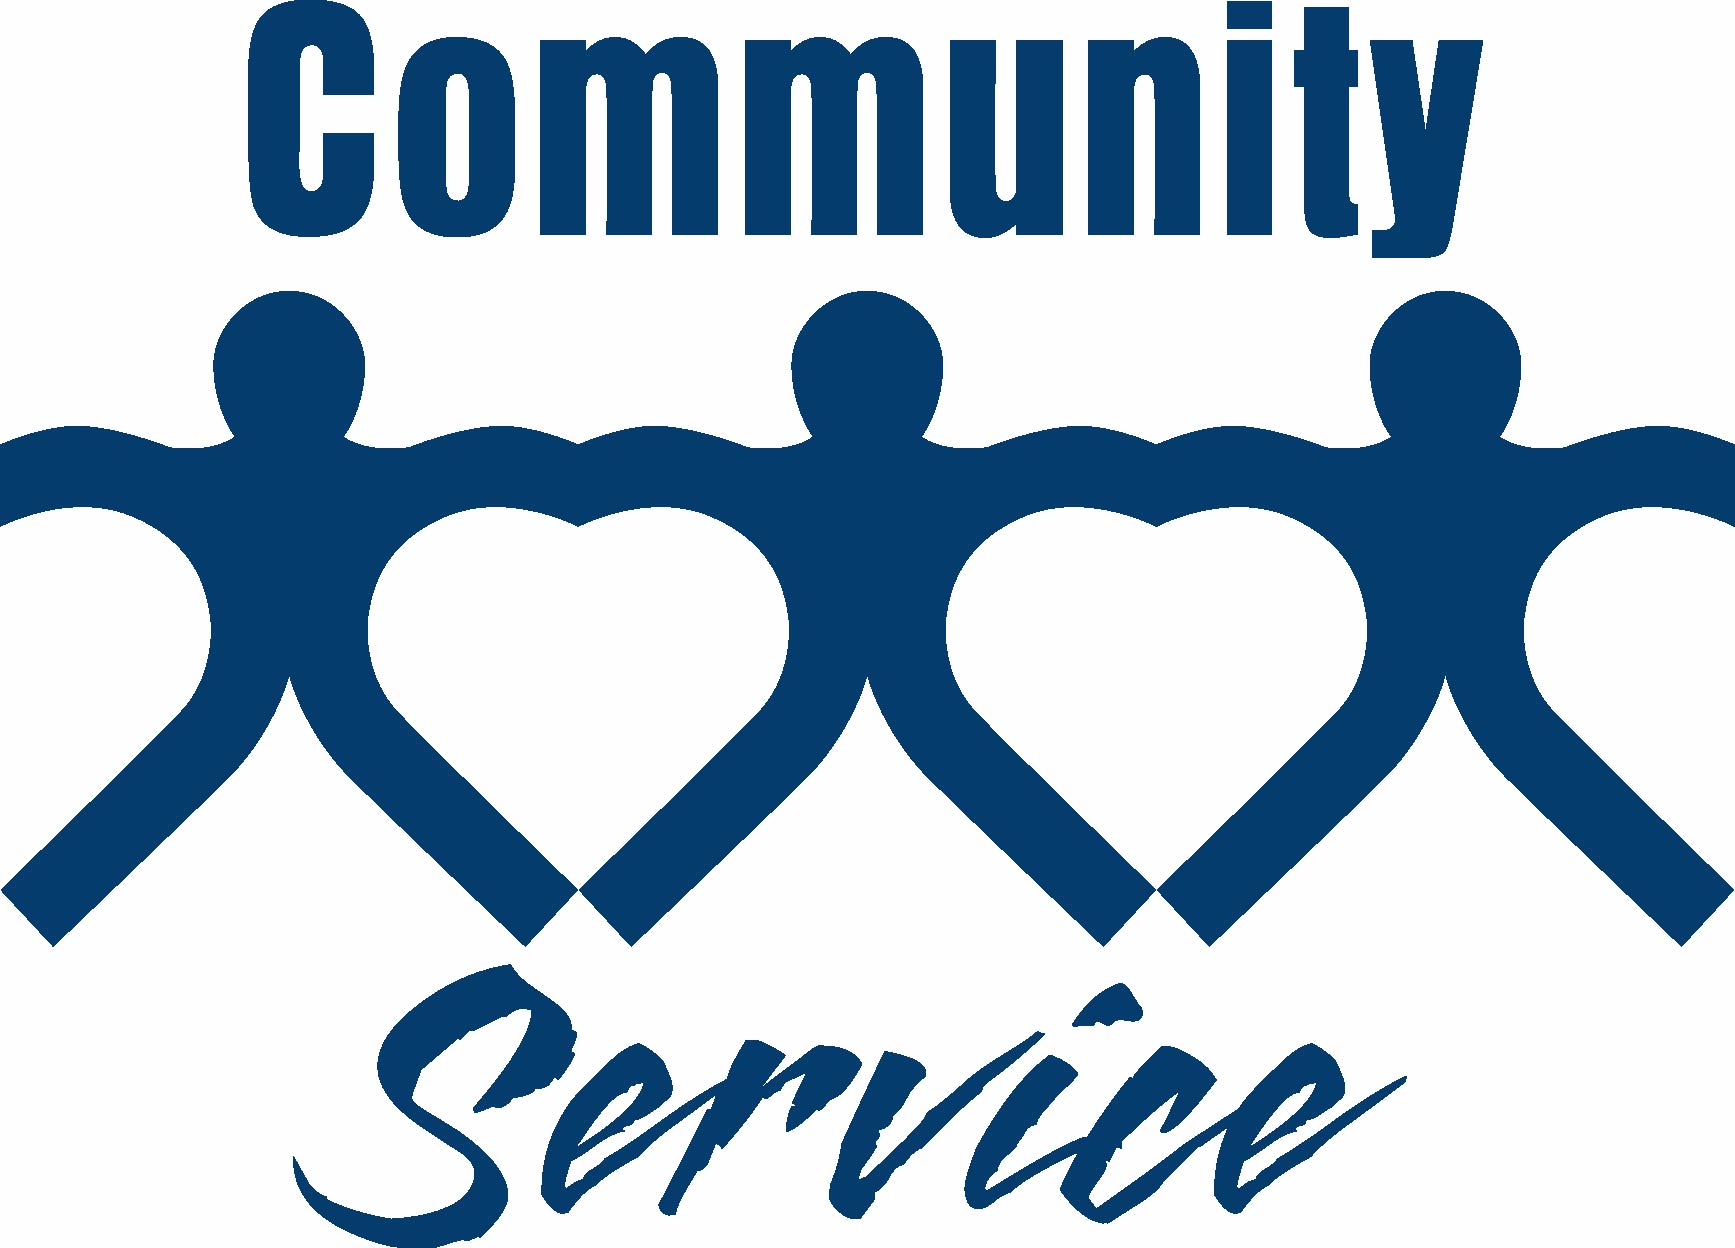 Together-We-can-make-a-difference-community-service-23891523-1735-1248